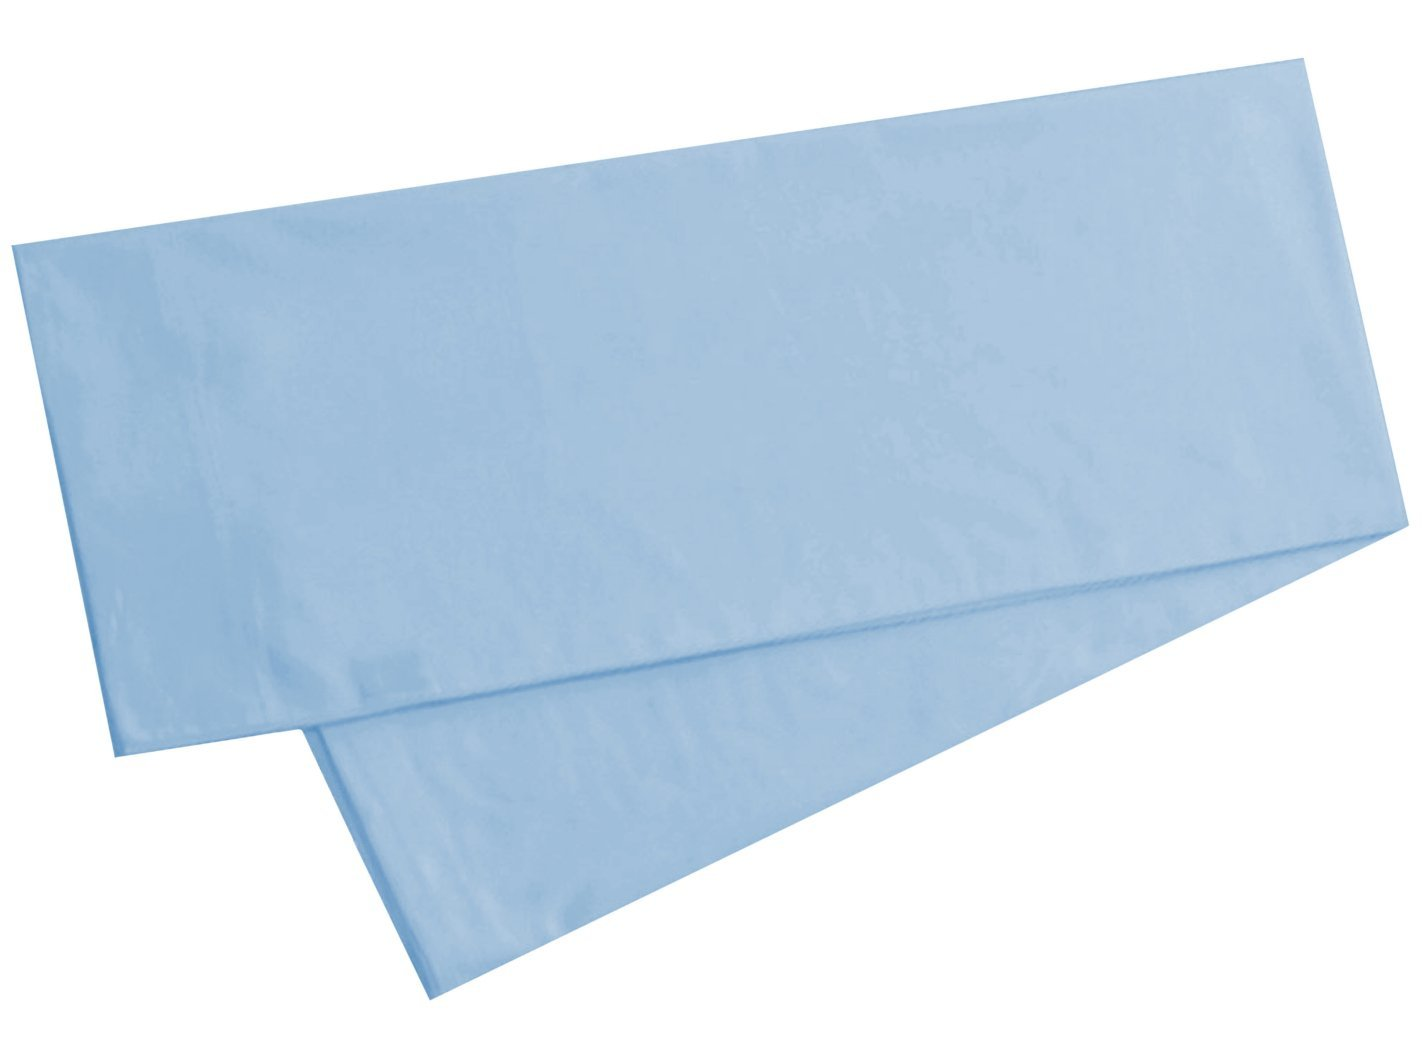 egyptian cotton 300 thread count body pillow cover 21 x 60 inch light blue